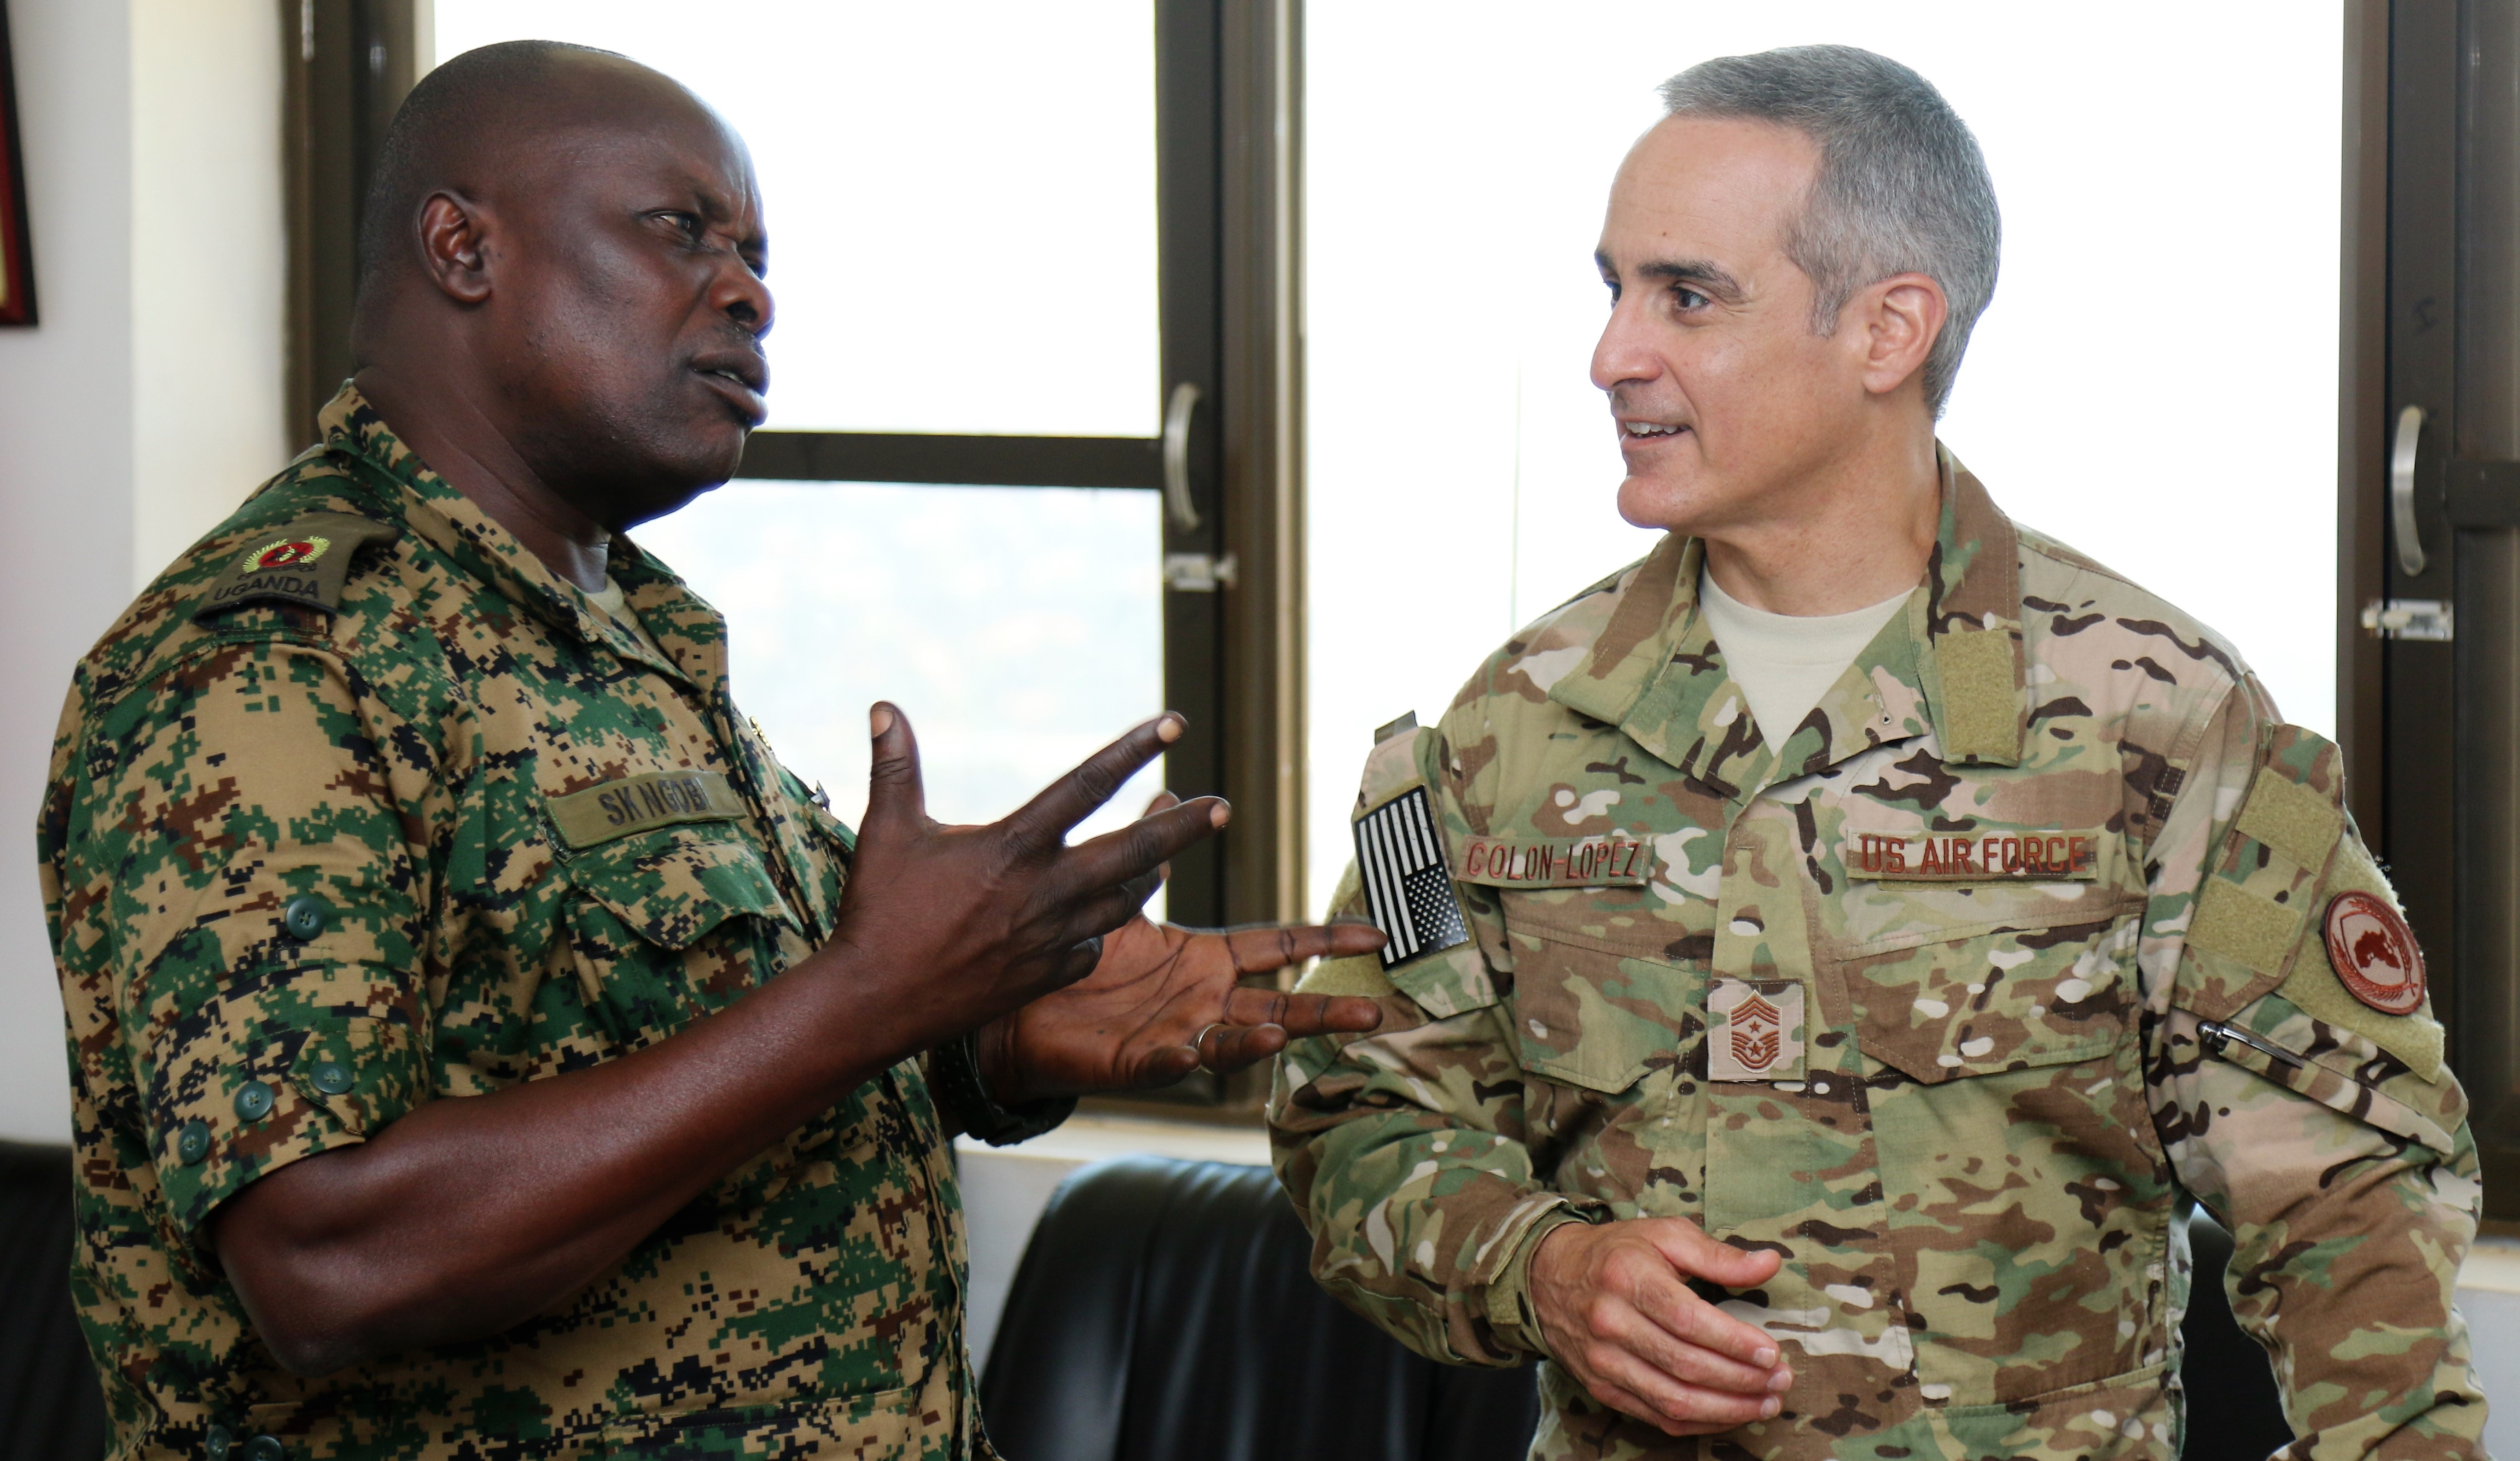 U.S. Air Force Chief Master Sgt. Ramon Colon-Lopez met with leadership from the Uganda Peoples' Defence Force in Kampala, Uganda Aug. 15, 2018 to discuss non-commissioned officer professional development.